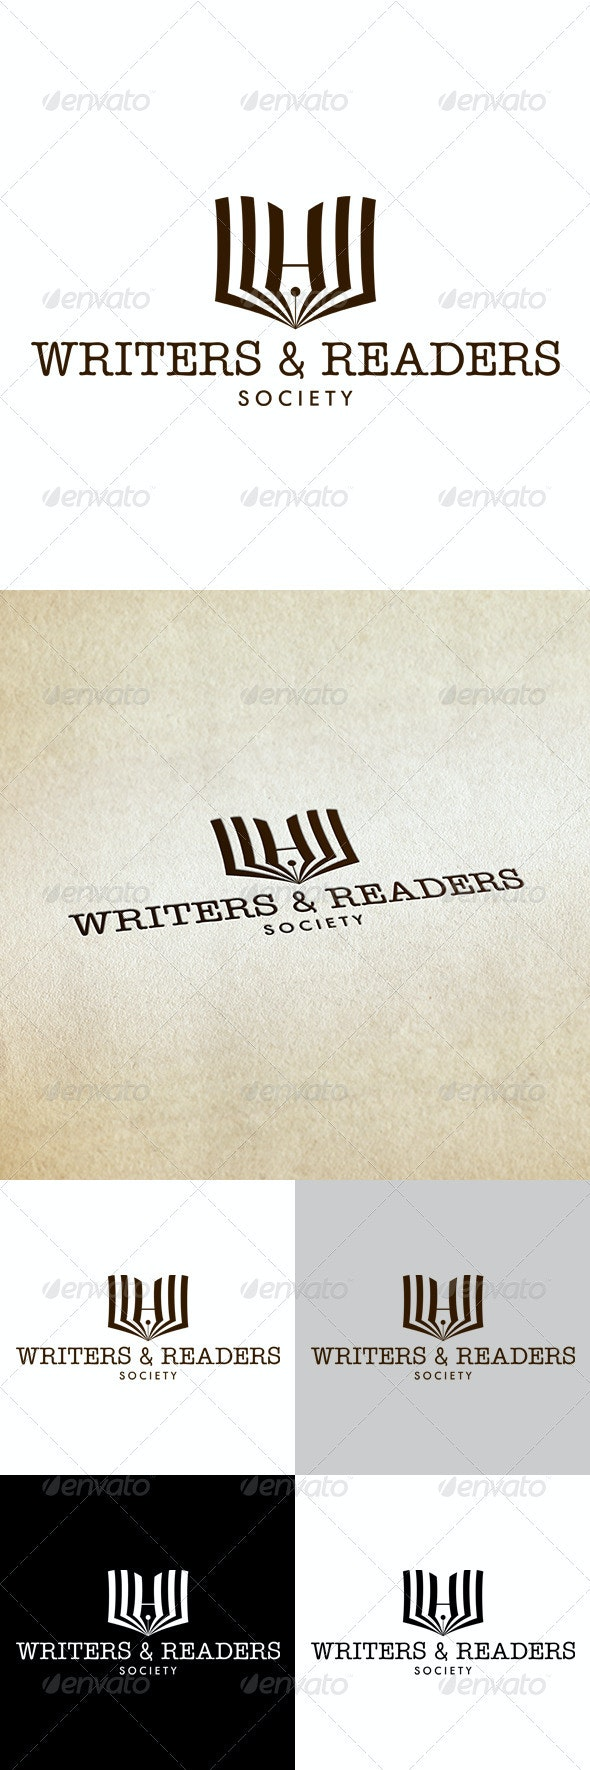 Writers & Readers - Objects Logo Templates